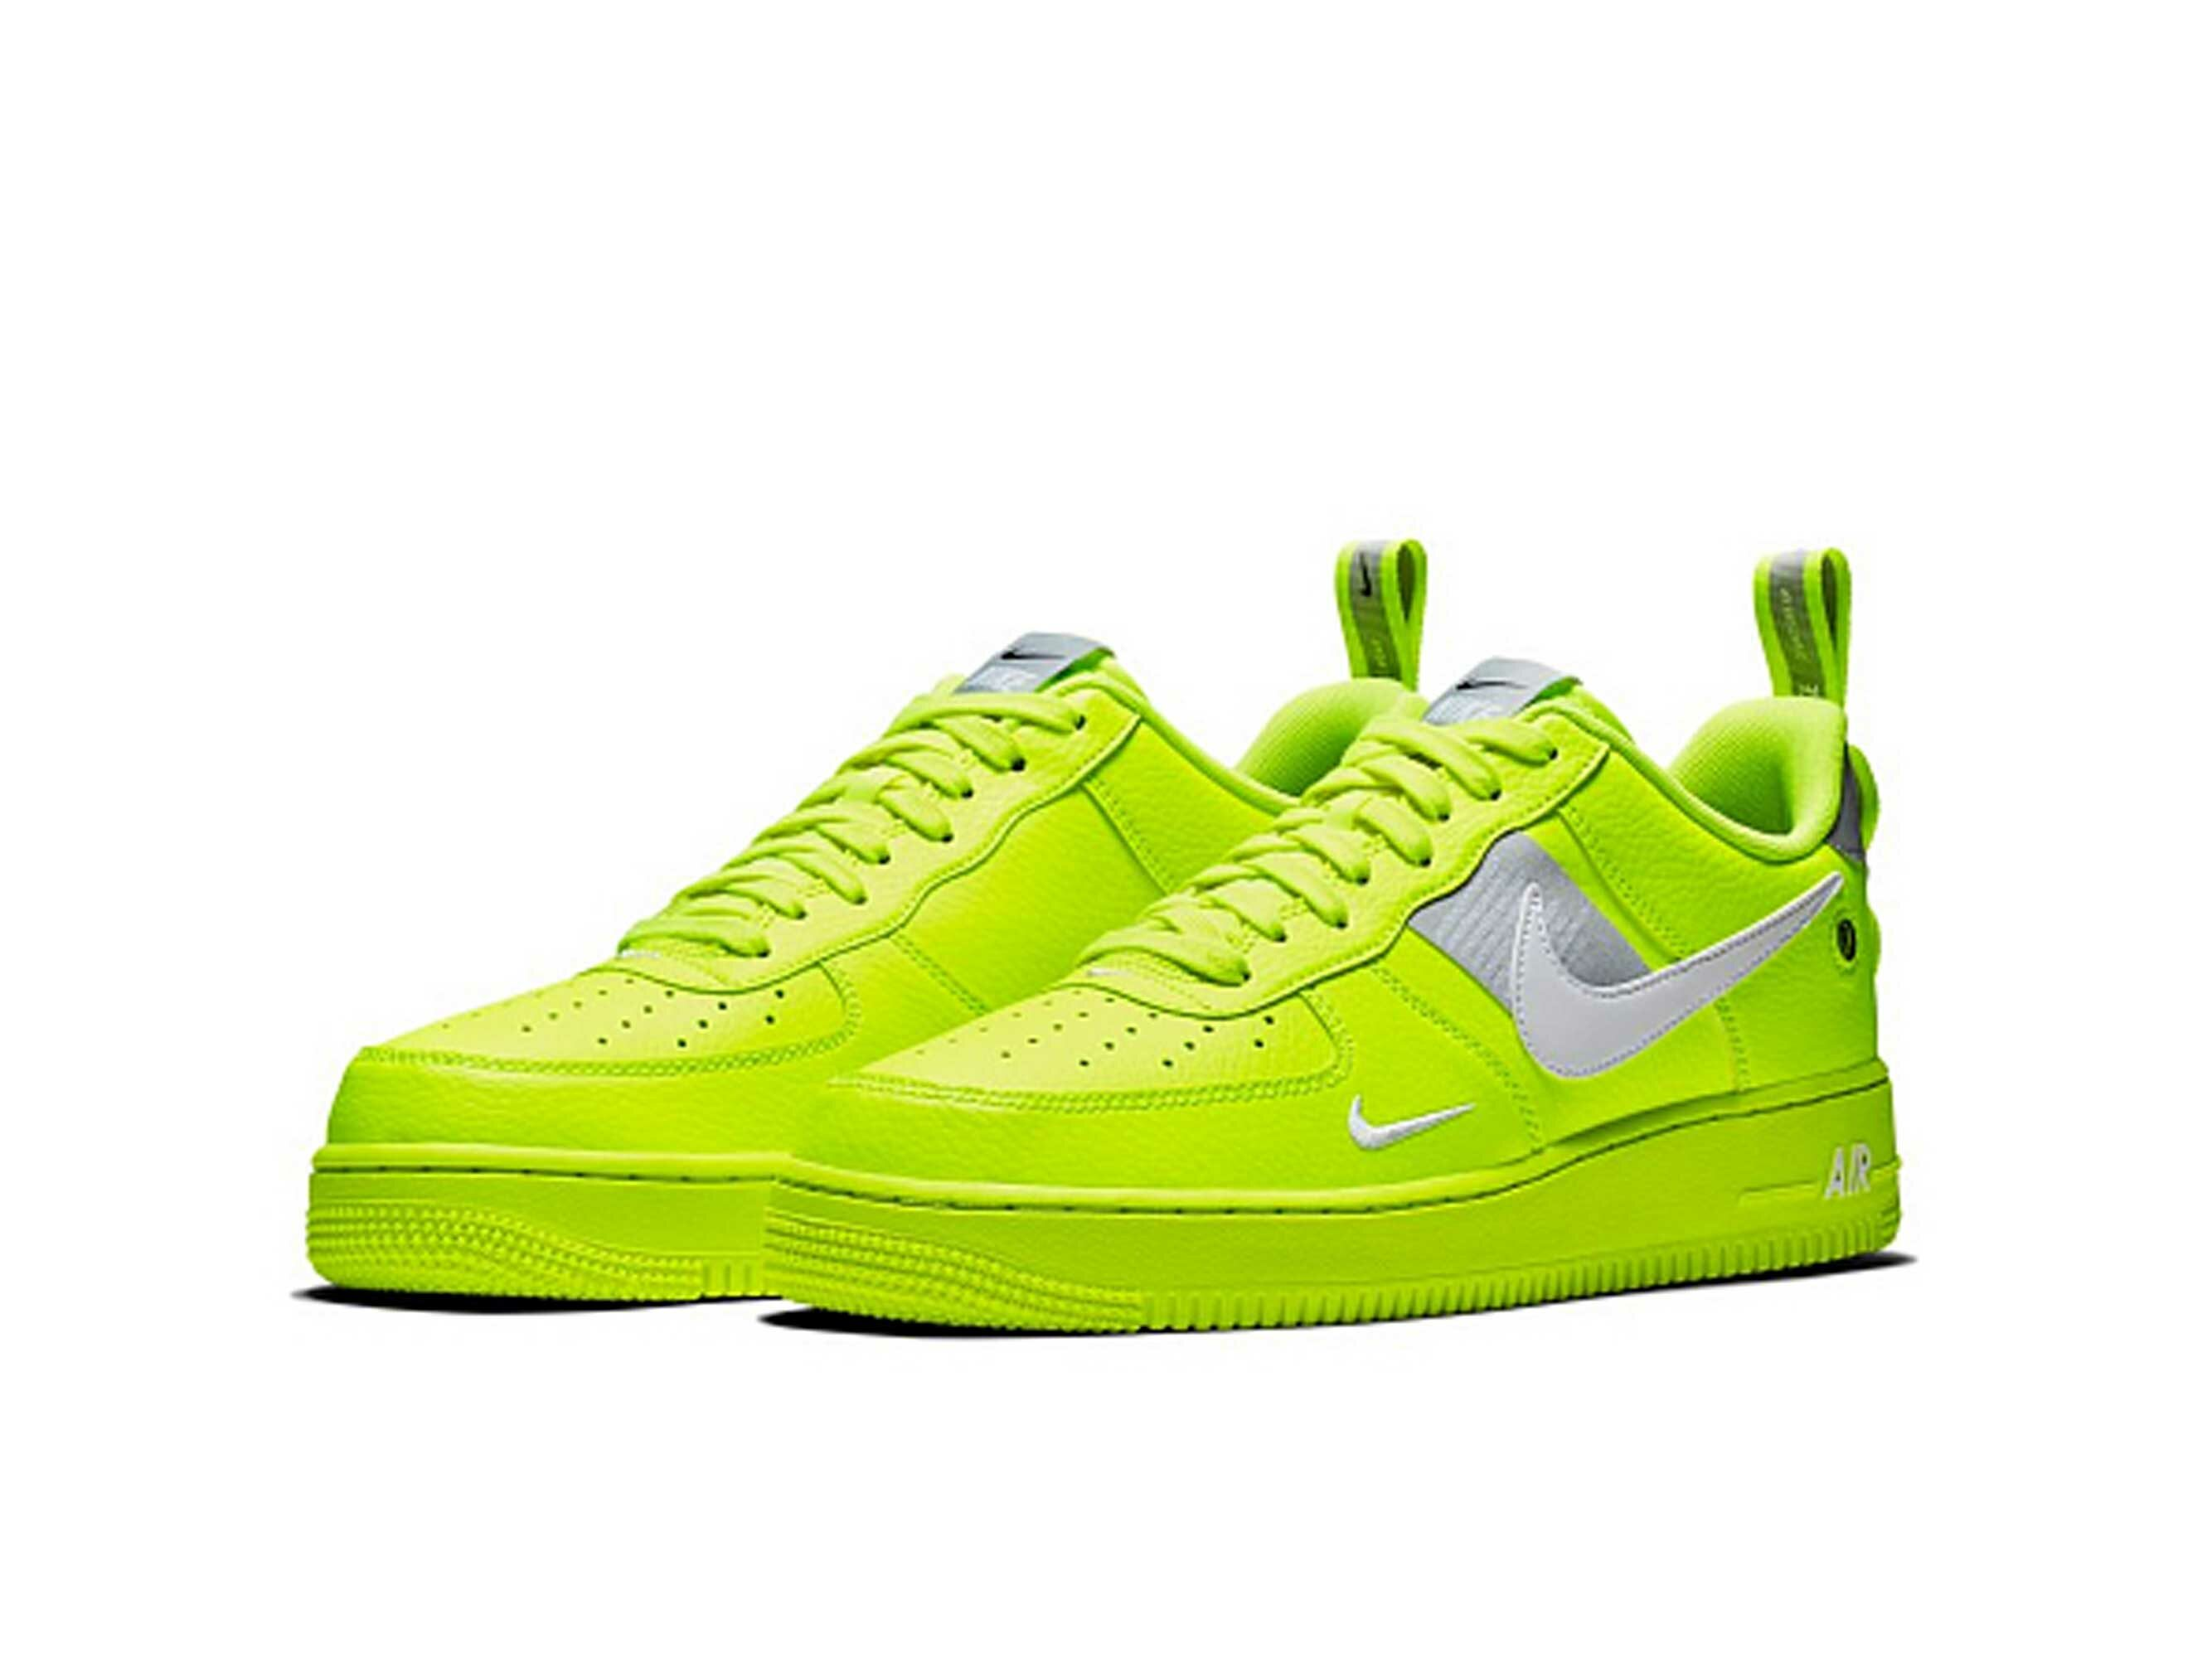 nike air force 1 '07 LV8 utility volt aj7747_700 купить